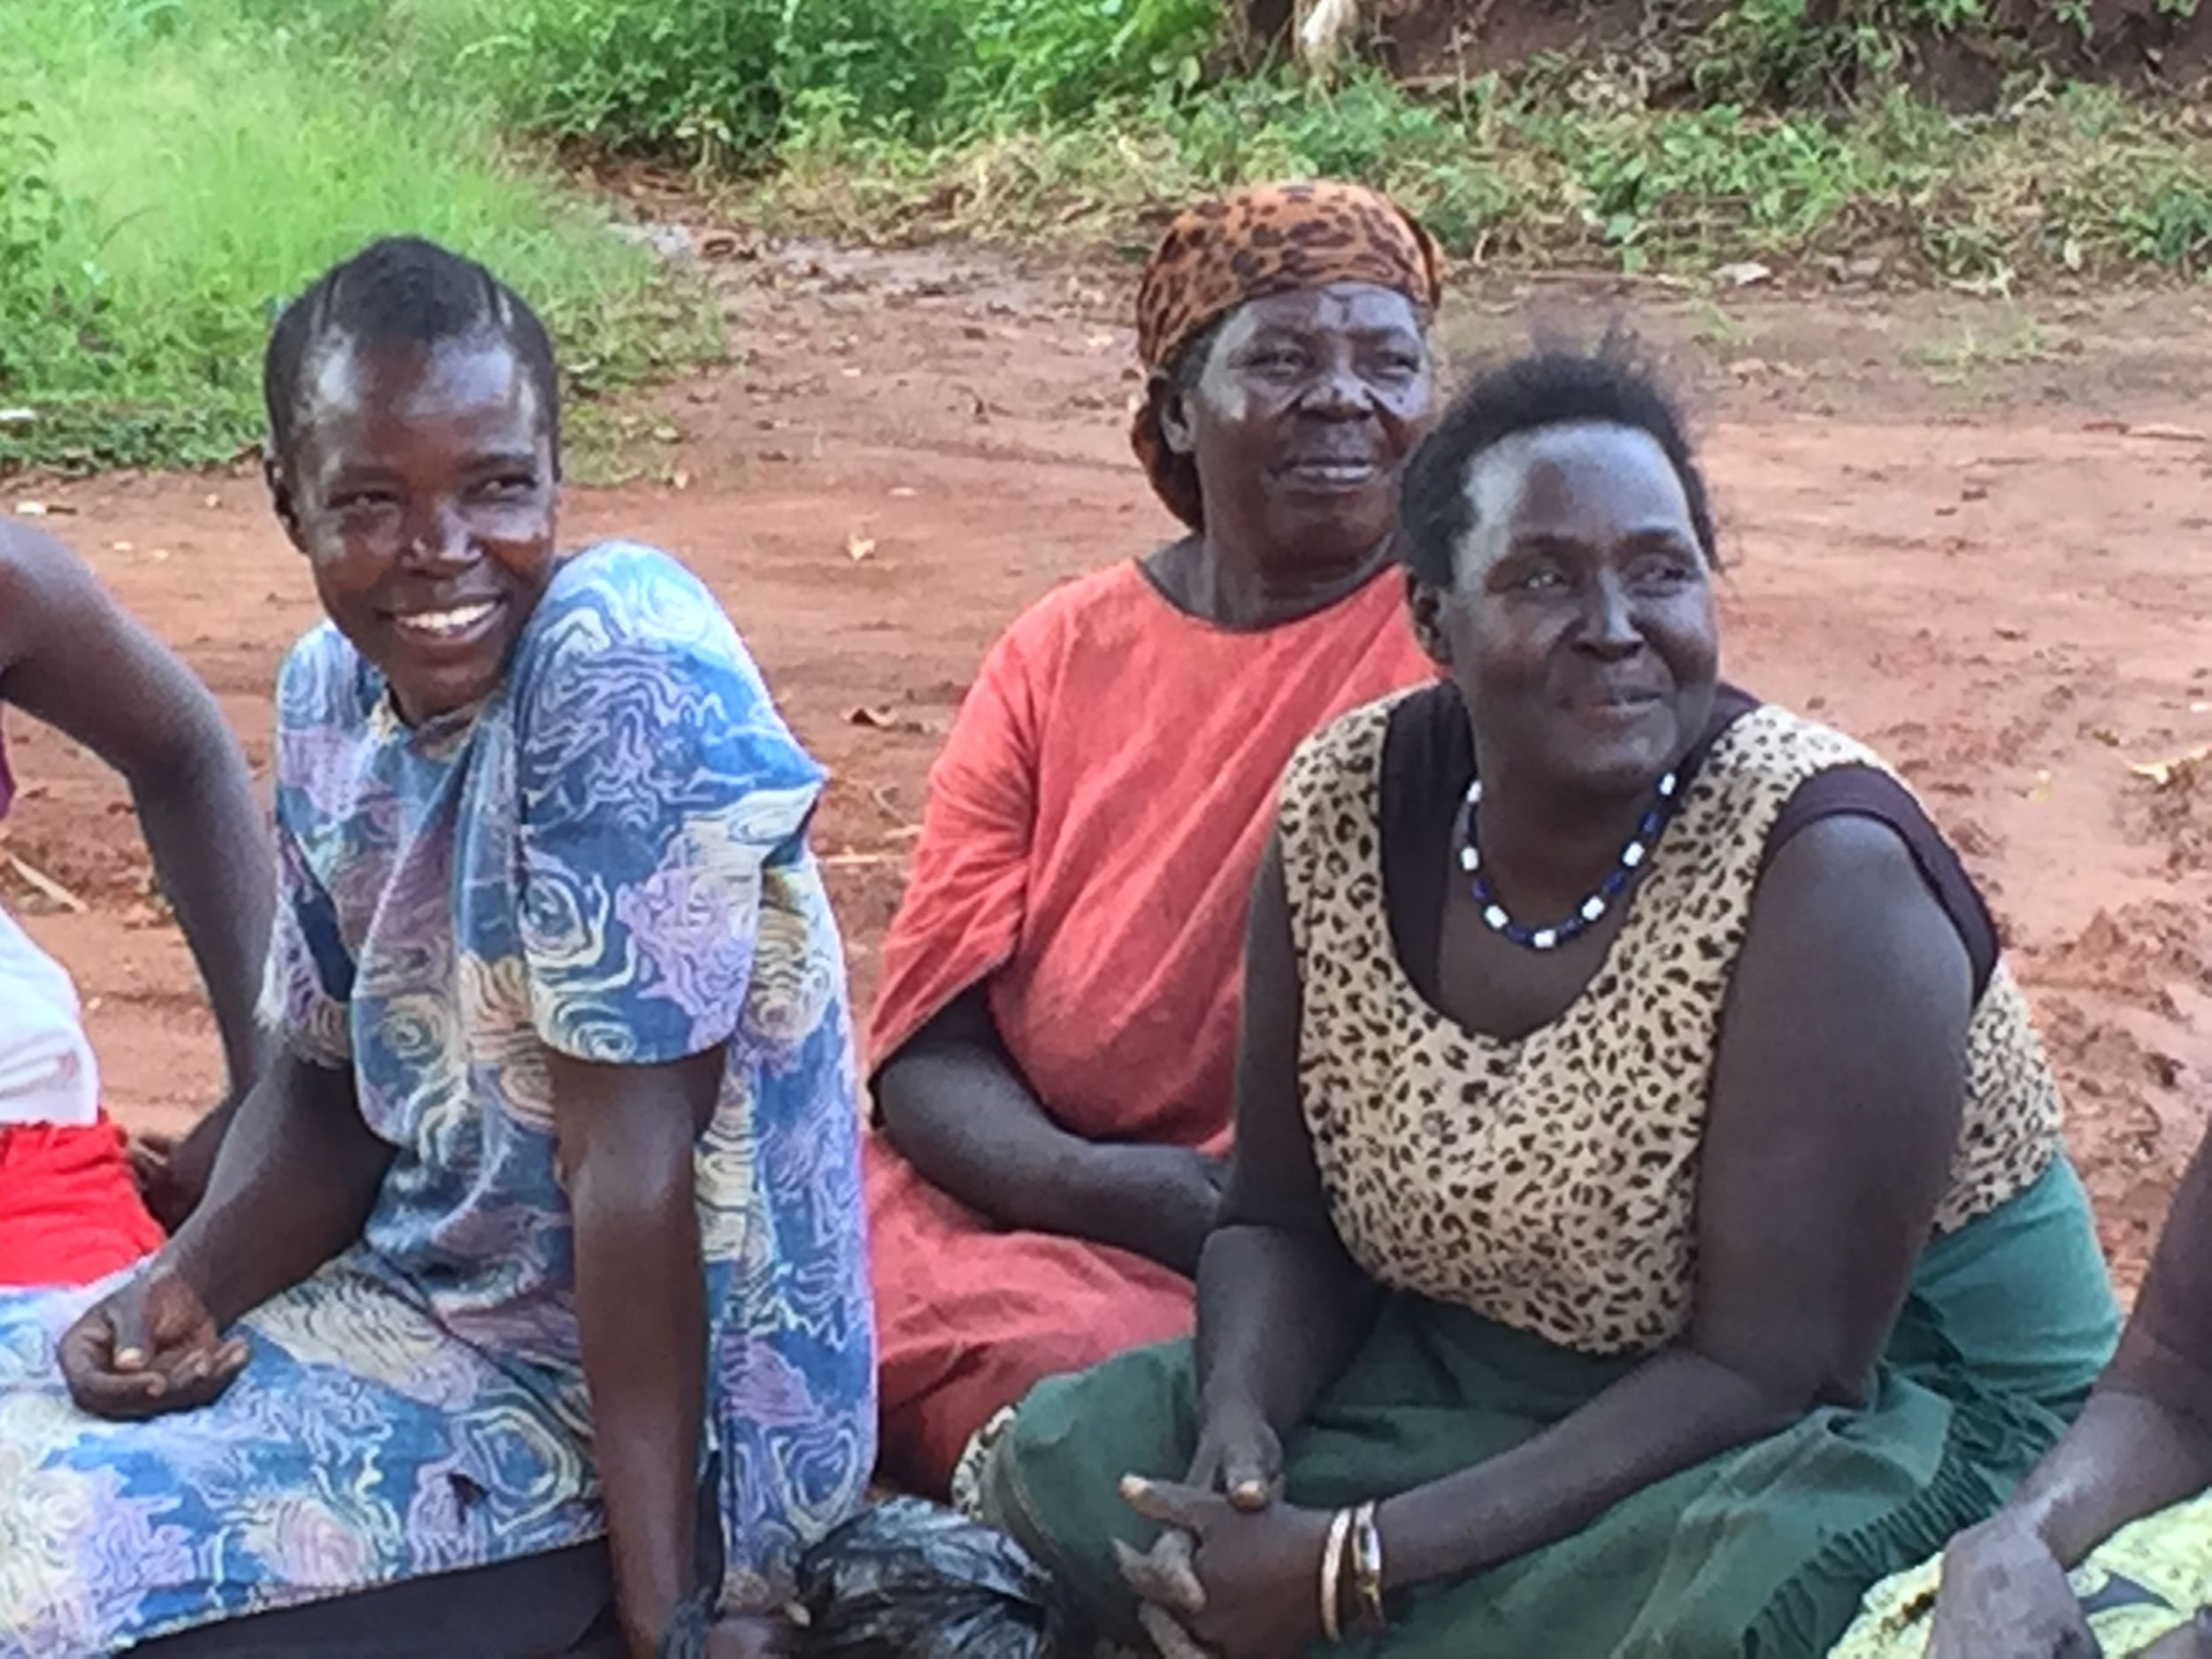 Smiling women WSC Election